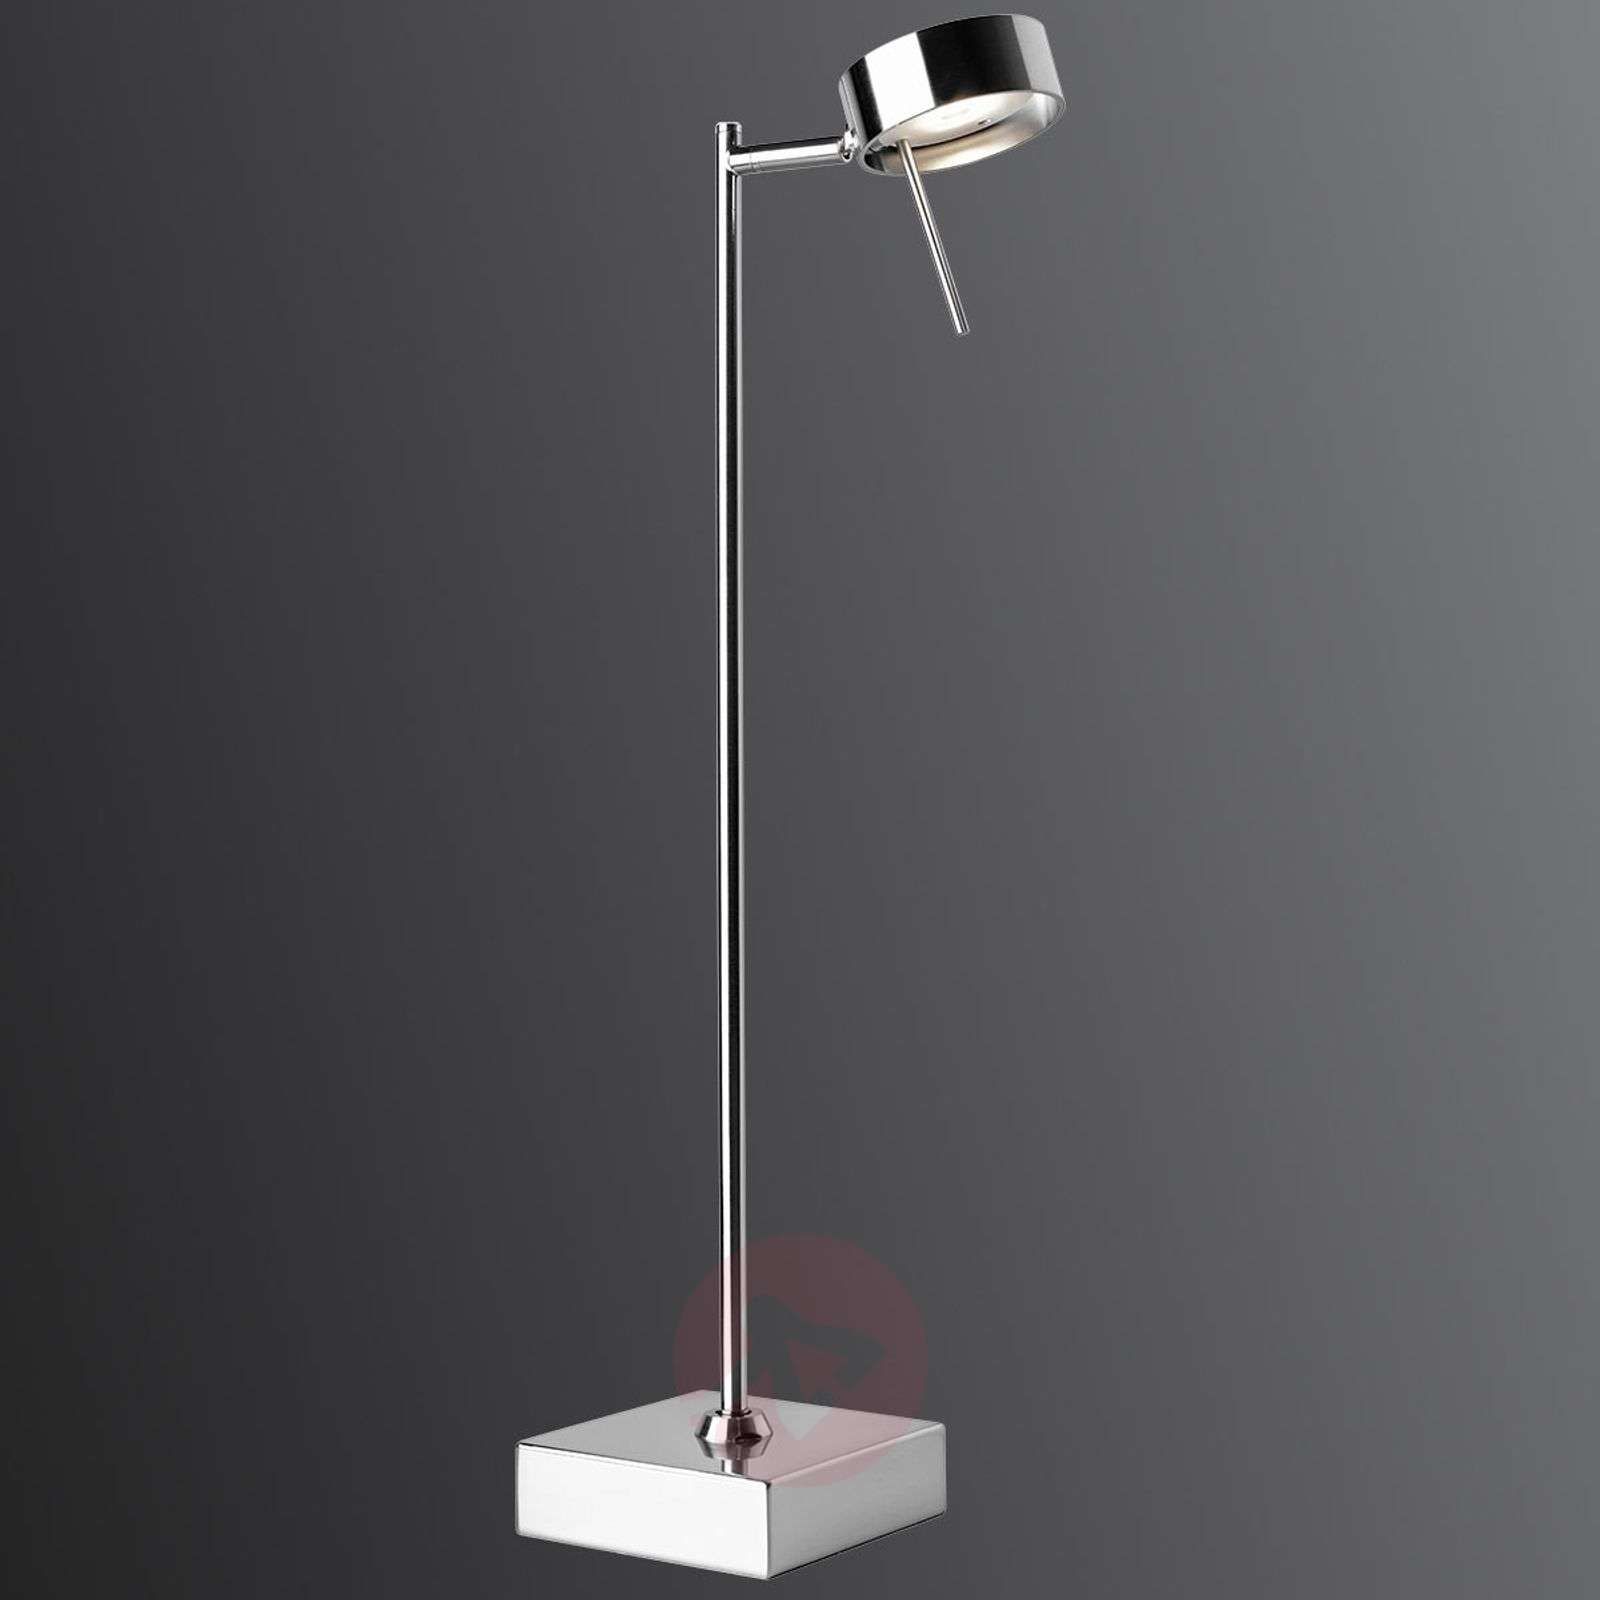 Led Poser À Bling Lampe Réglable ID9EHW2Y